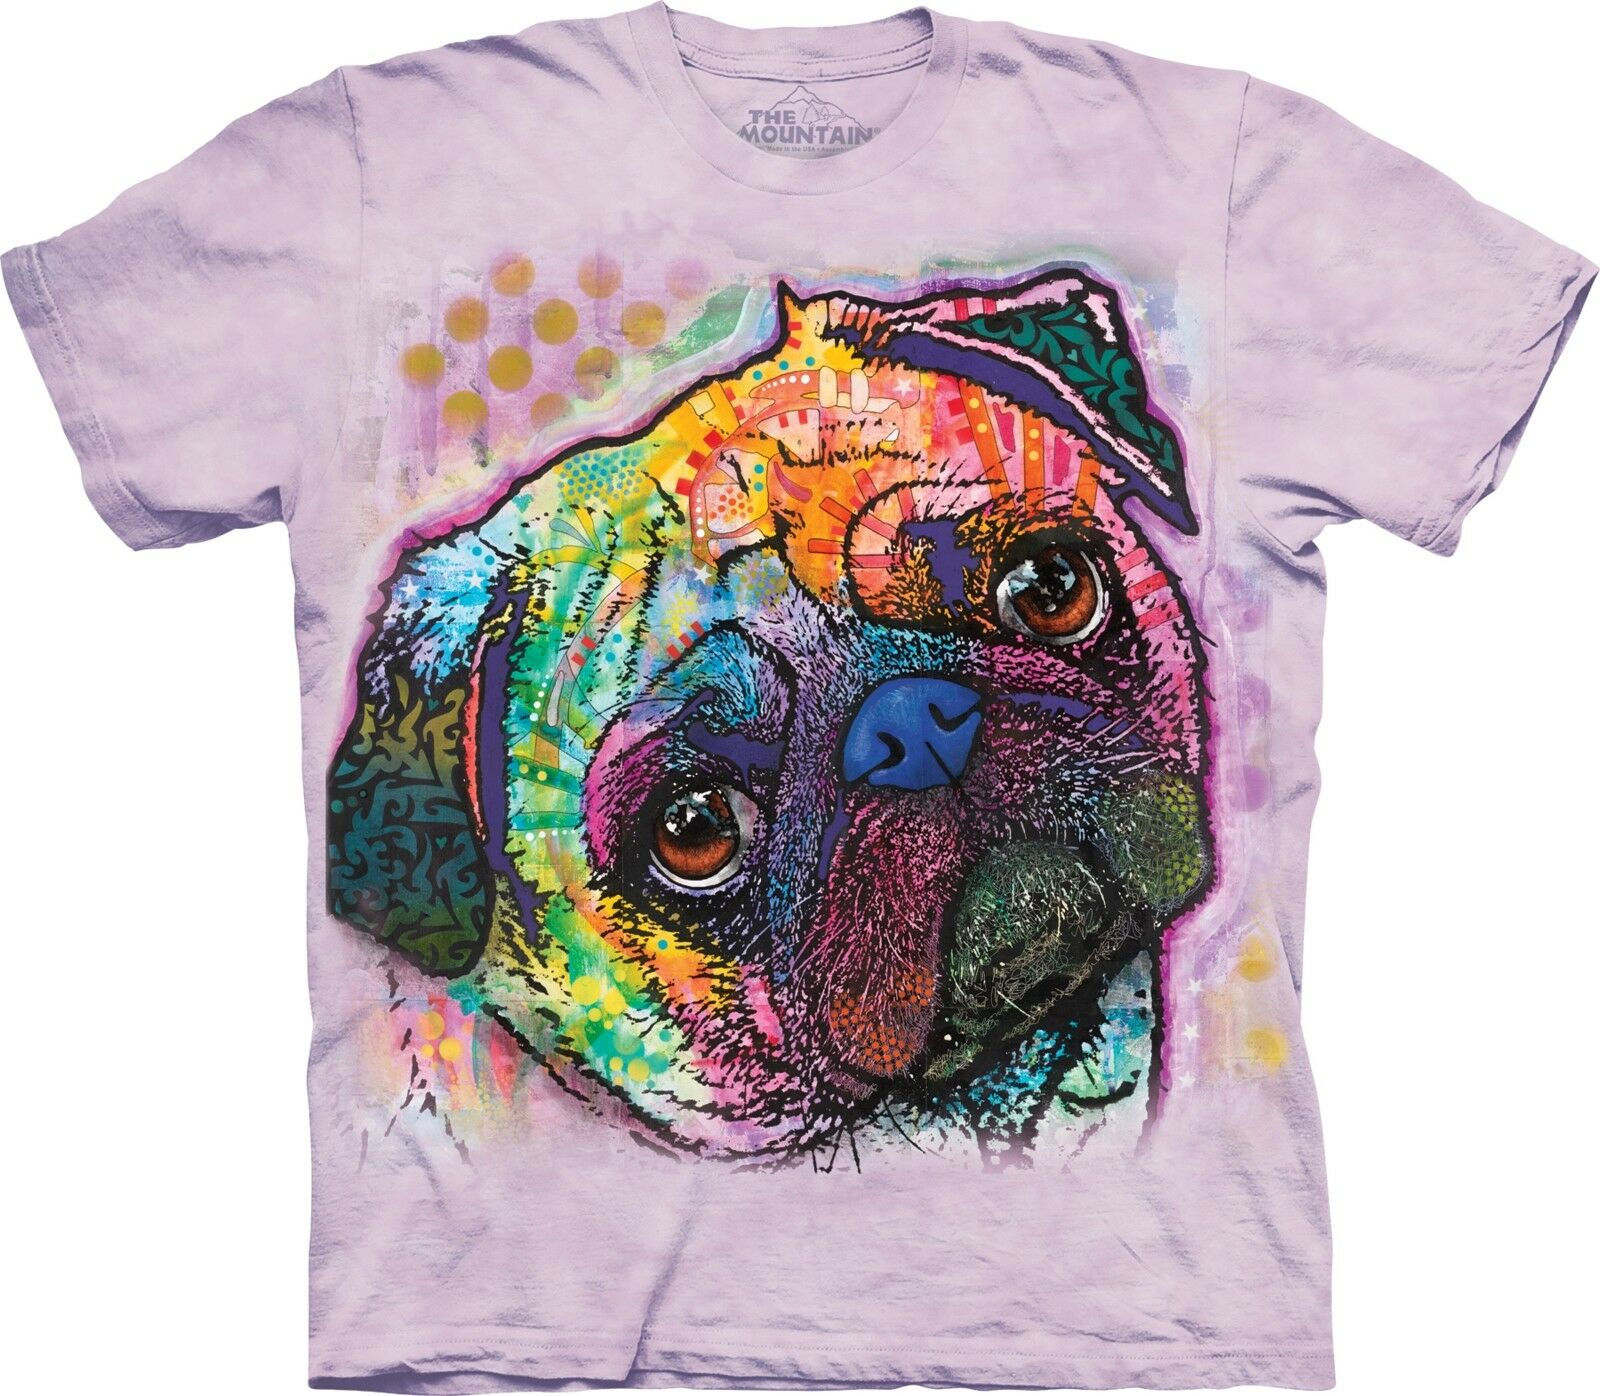 The Mountain T-Shirt    Lovable Pug      | Modern